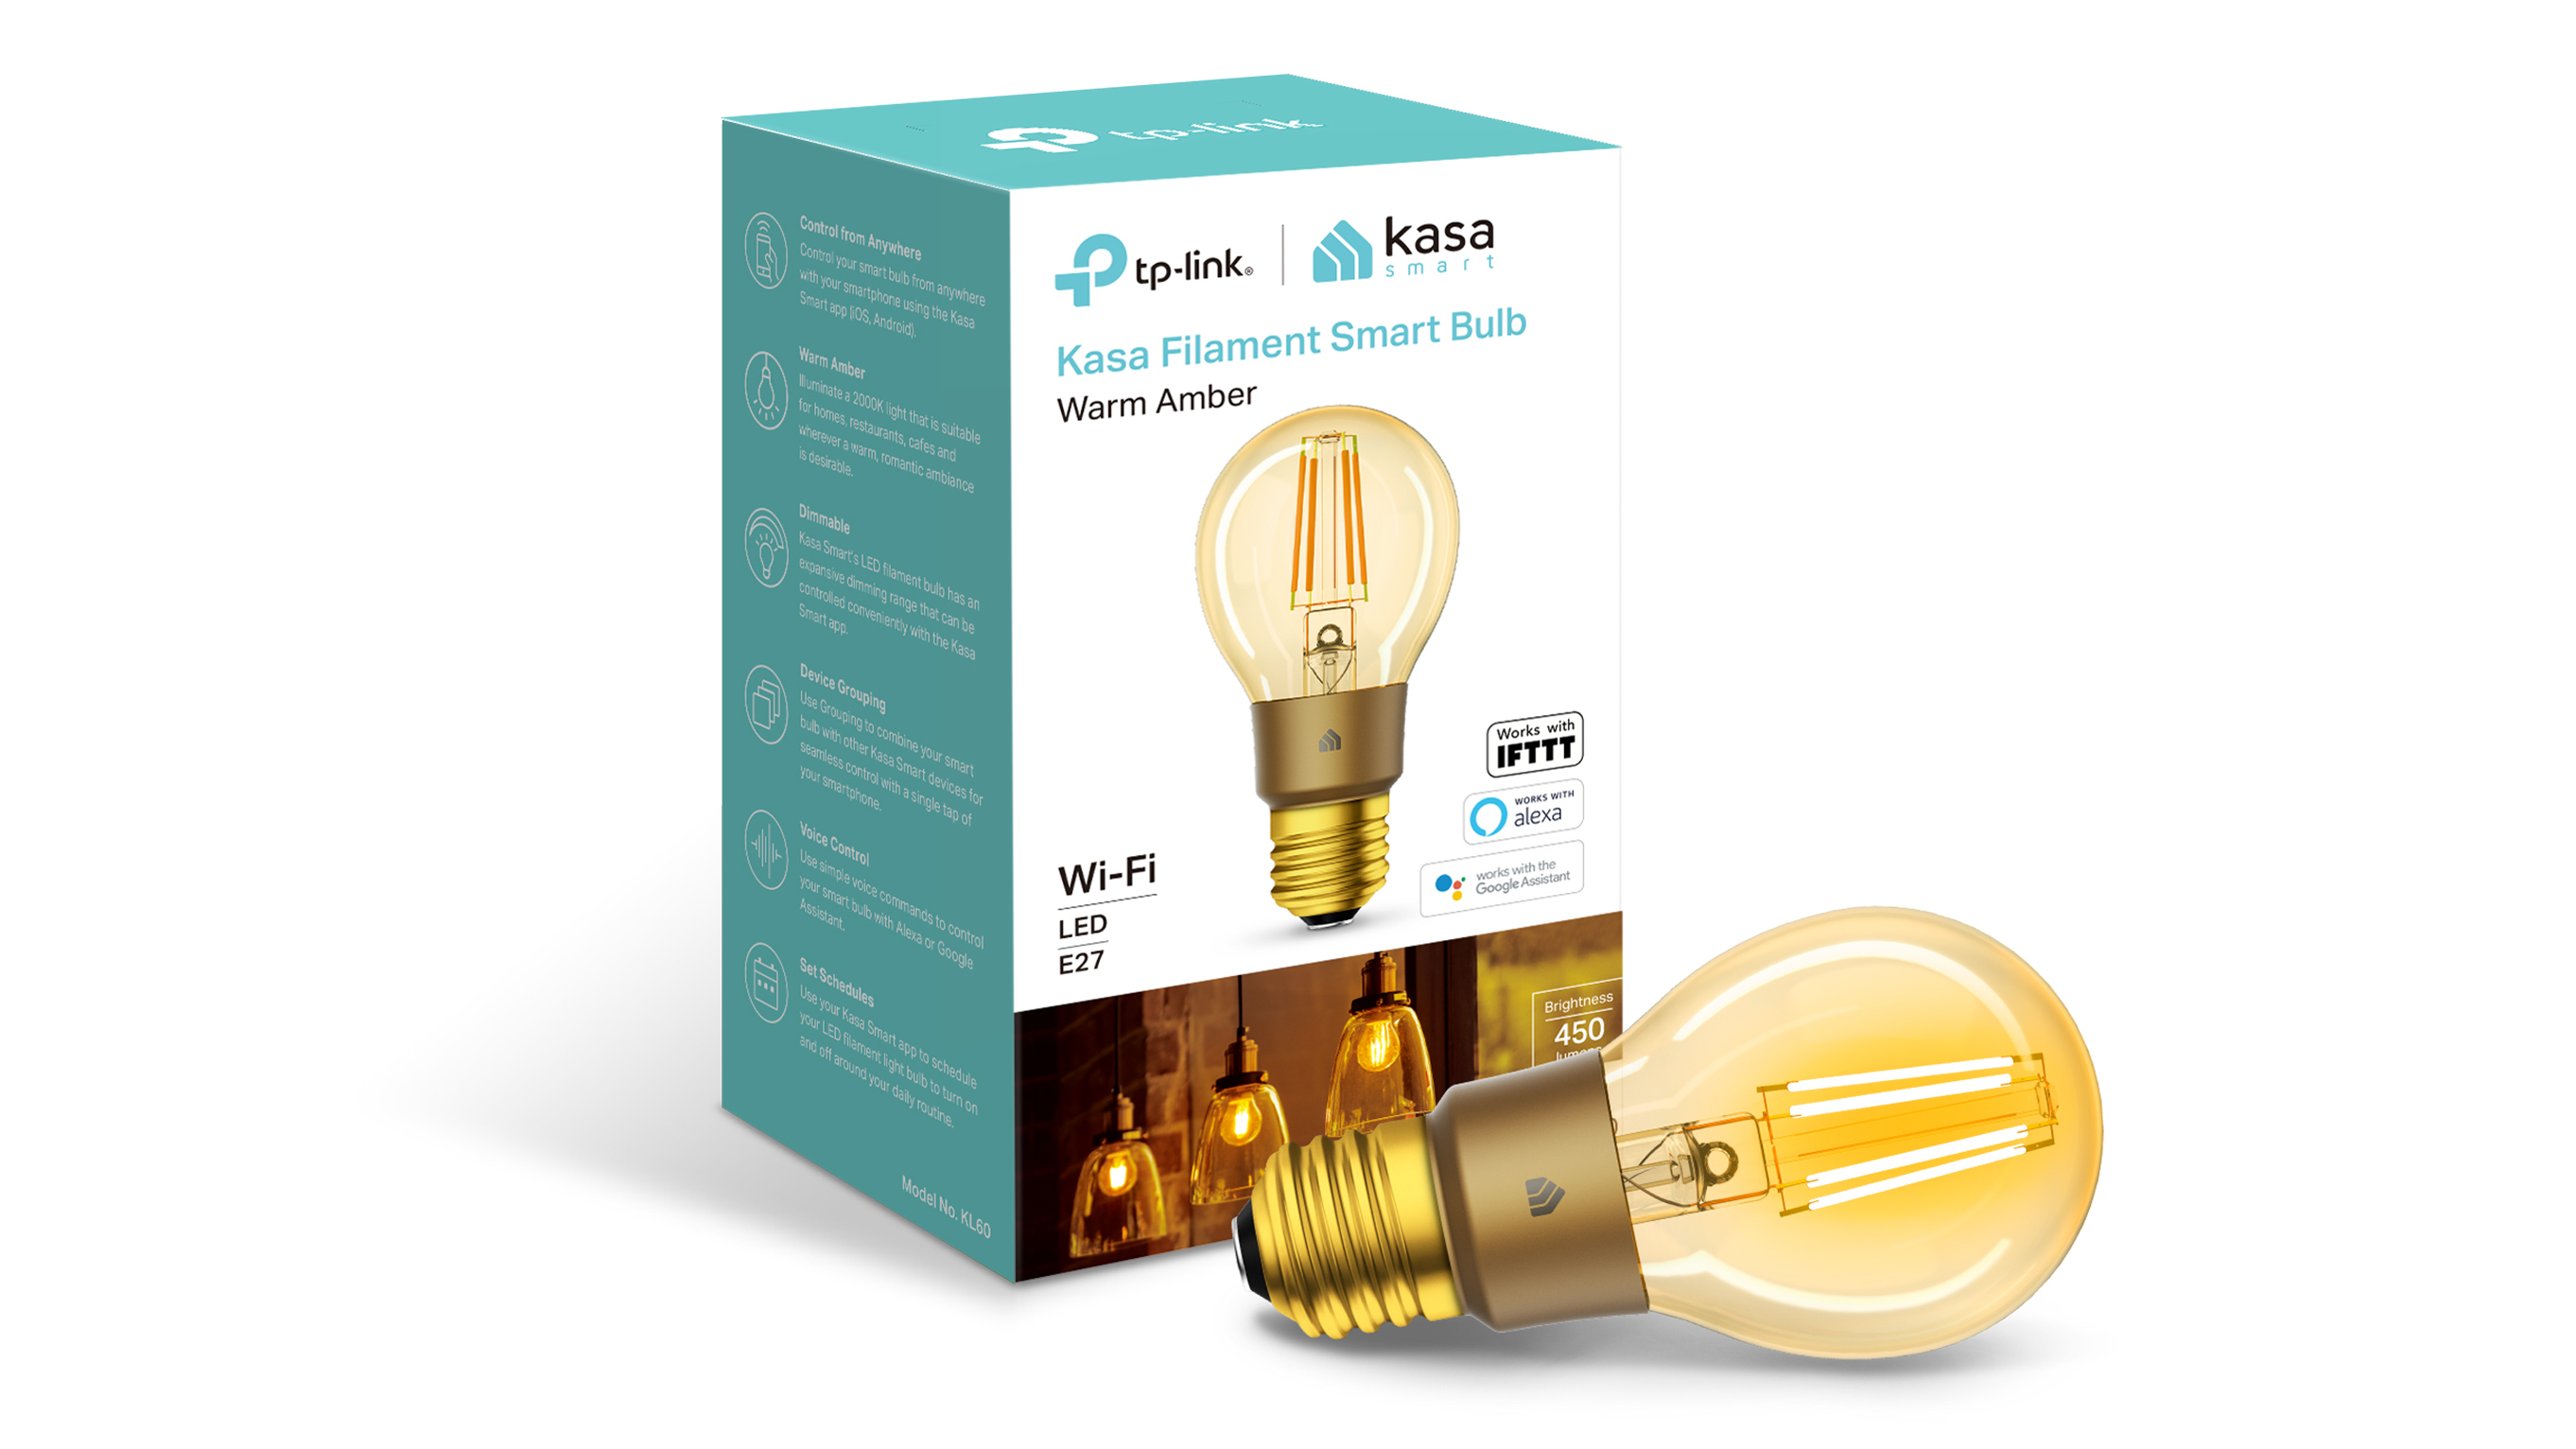 TP-Link now sells a smart light strip and Wi-Fi vintage light bulbs